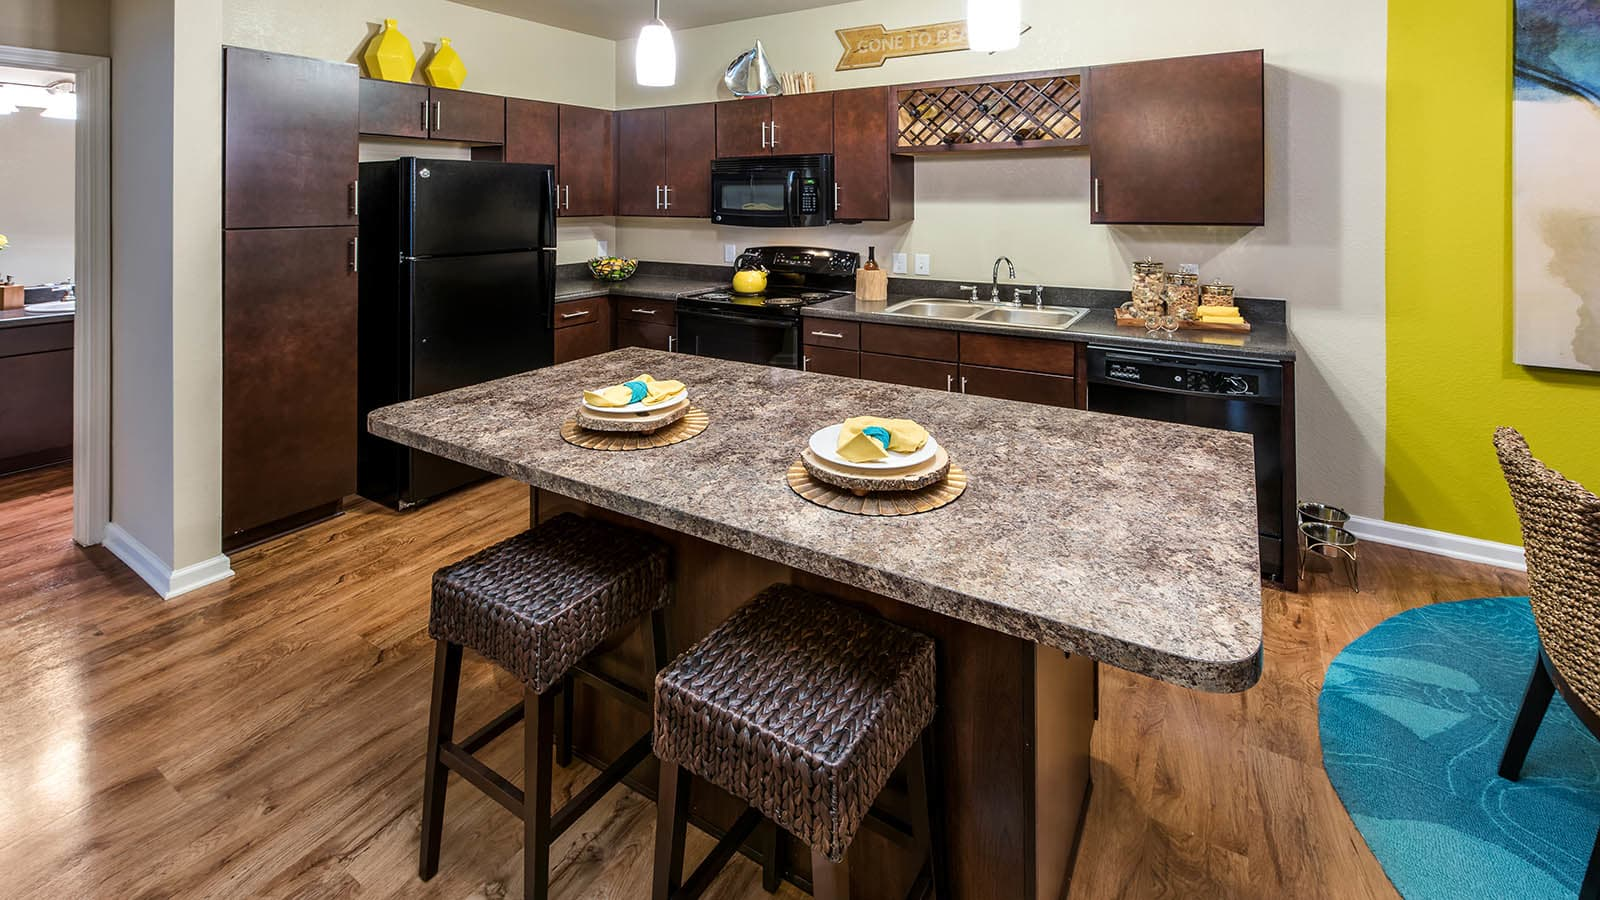 Gourmet Kitchen at Longitude 81 in Estero, FL